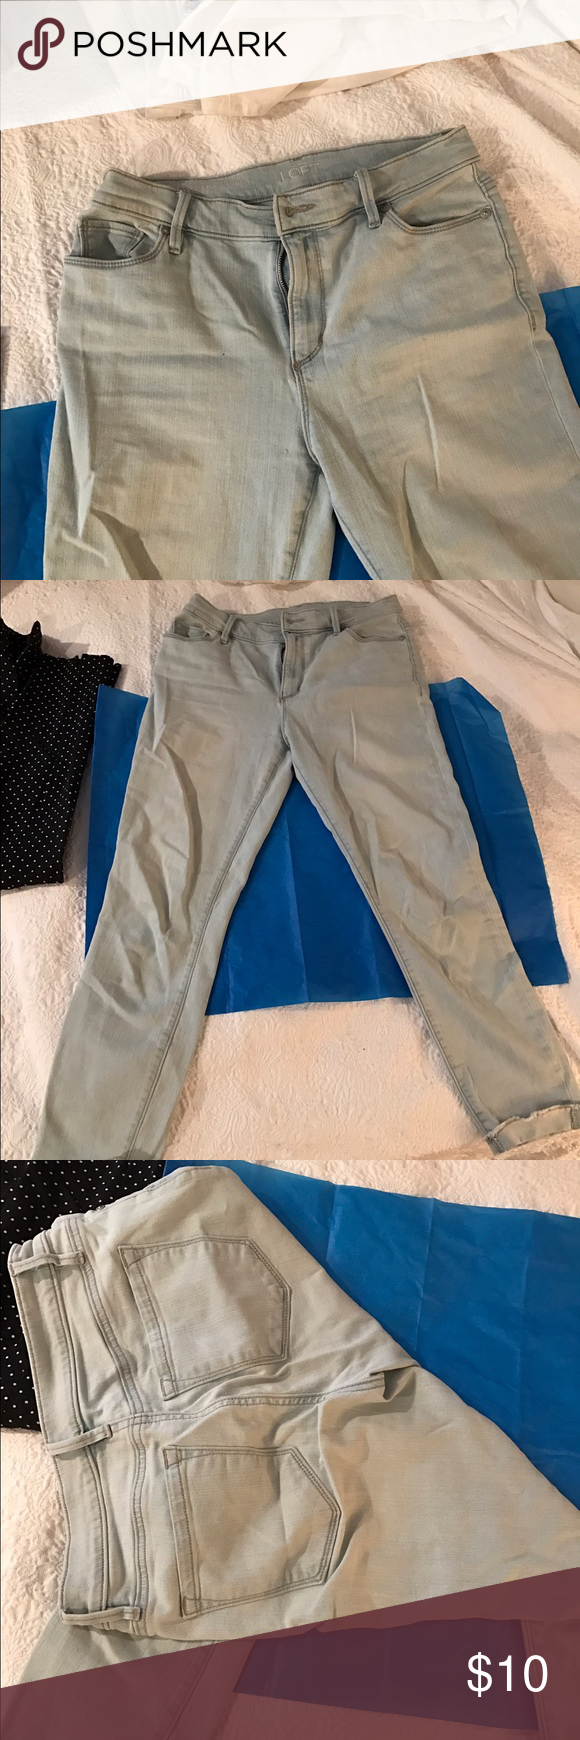 Cropped light blue jeans from Loft Very pale blue cropped lightweight jeans from LOFT. Uncuffed for  a frayed look. Good condition LOFT Jeans Ankle & Cropped